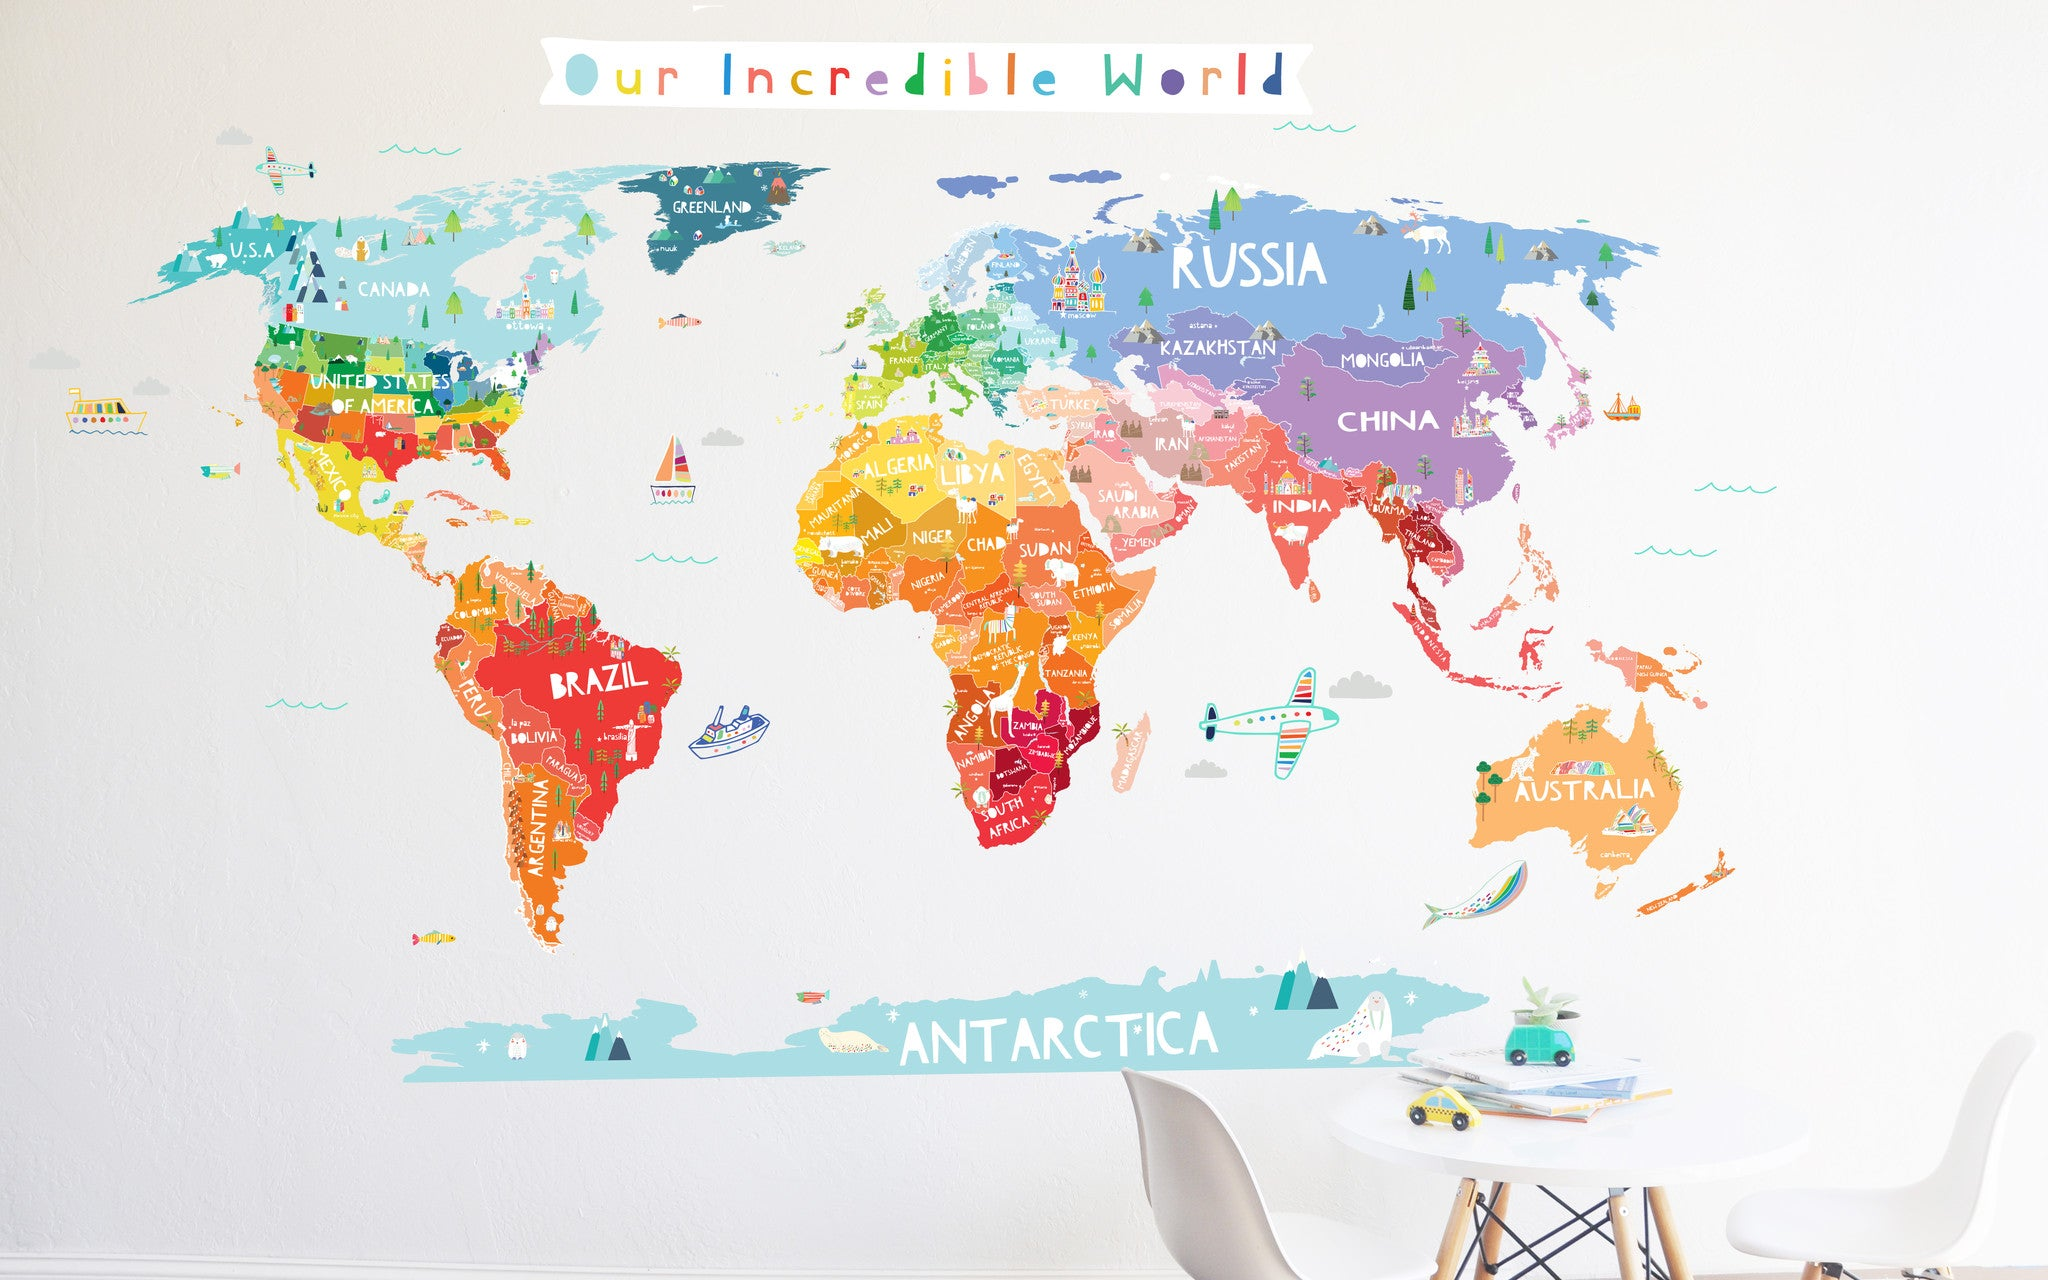 World map sticker for wall india - Our Incredible World Die Cut World Map Wall Decal With Personalization Stickers